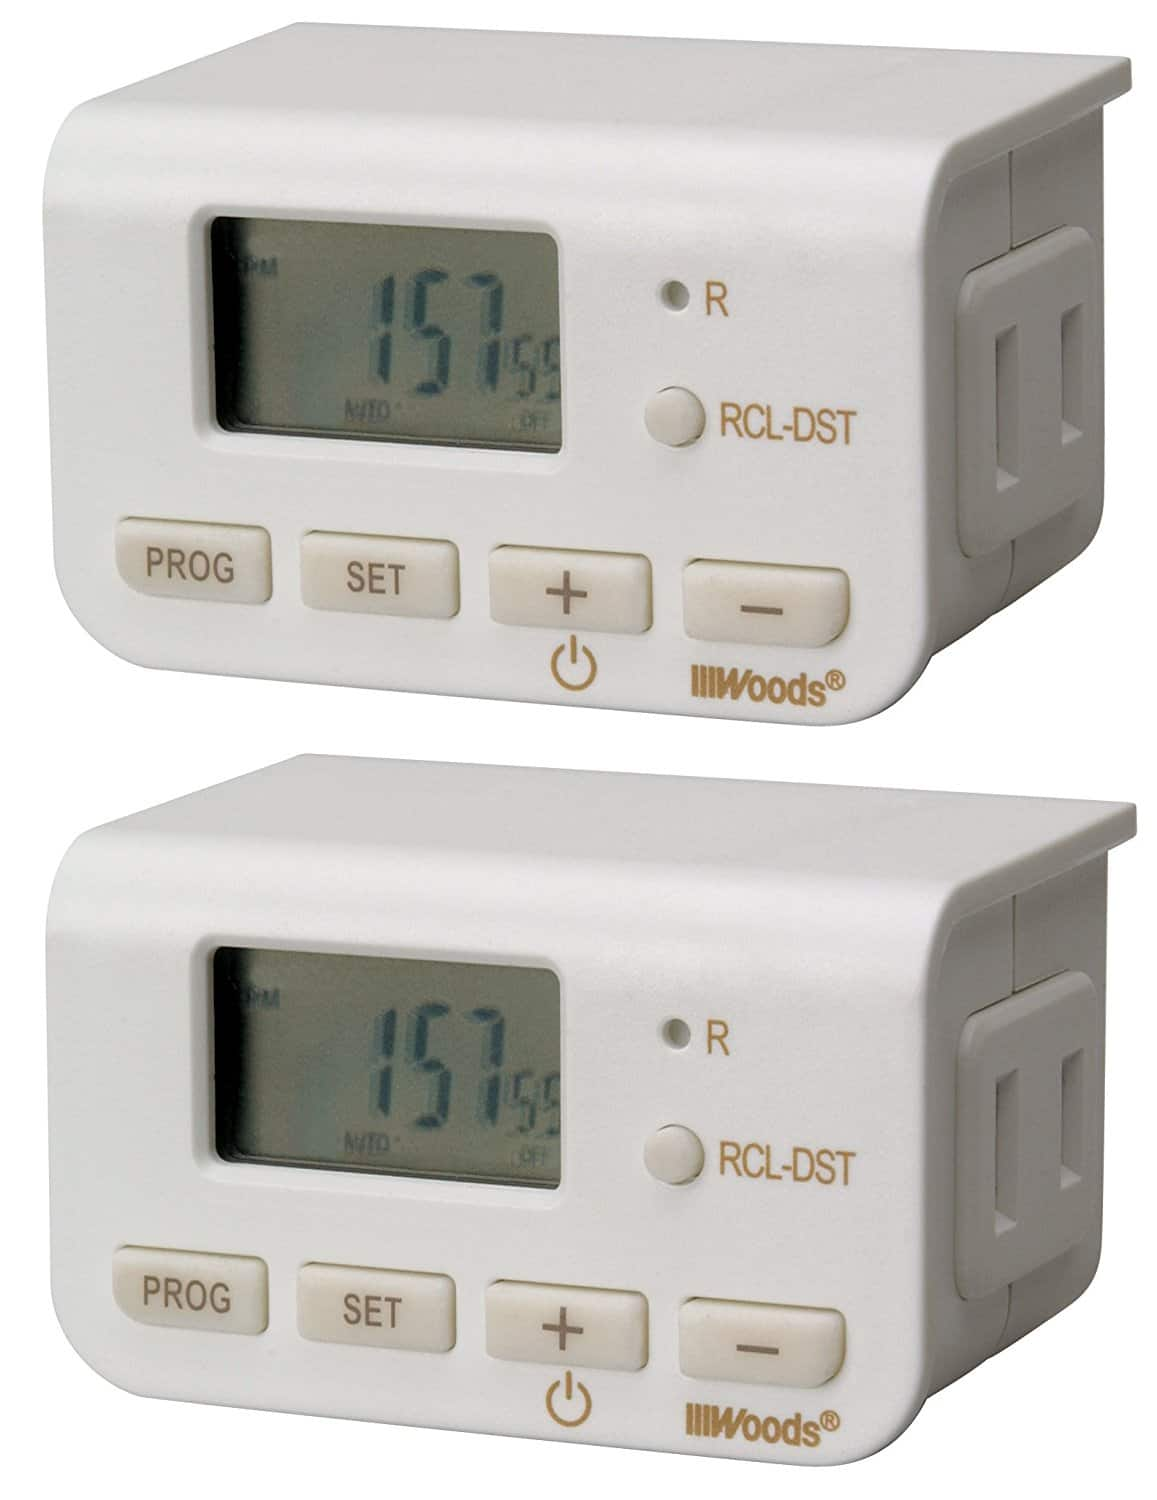 Add-On Item: Woods 50007WD Indoor 24-Hour Digital Plug-In Timer, 2 Pack, 1 Polarized Outlet $3.46